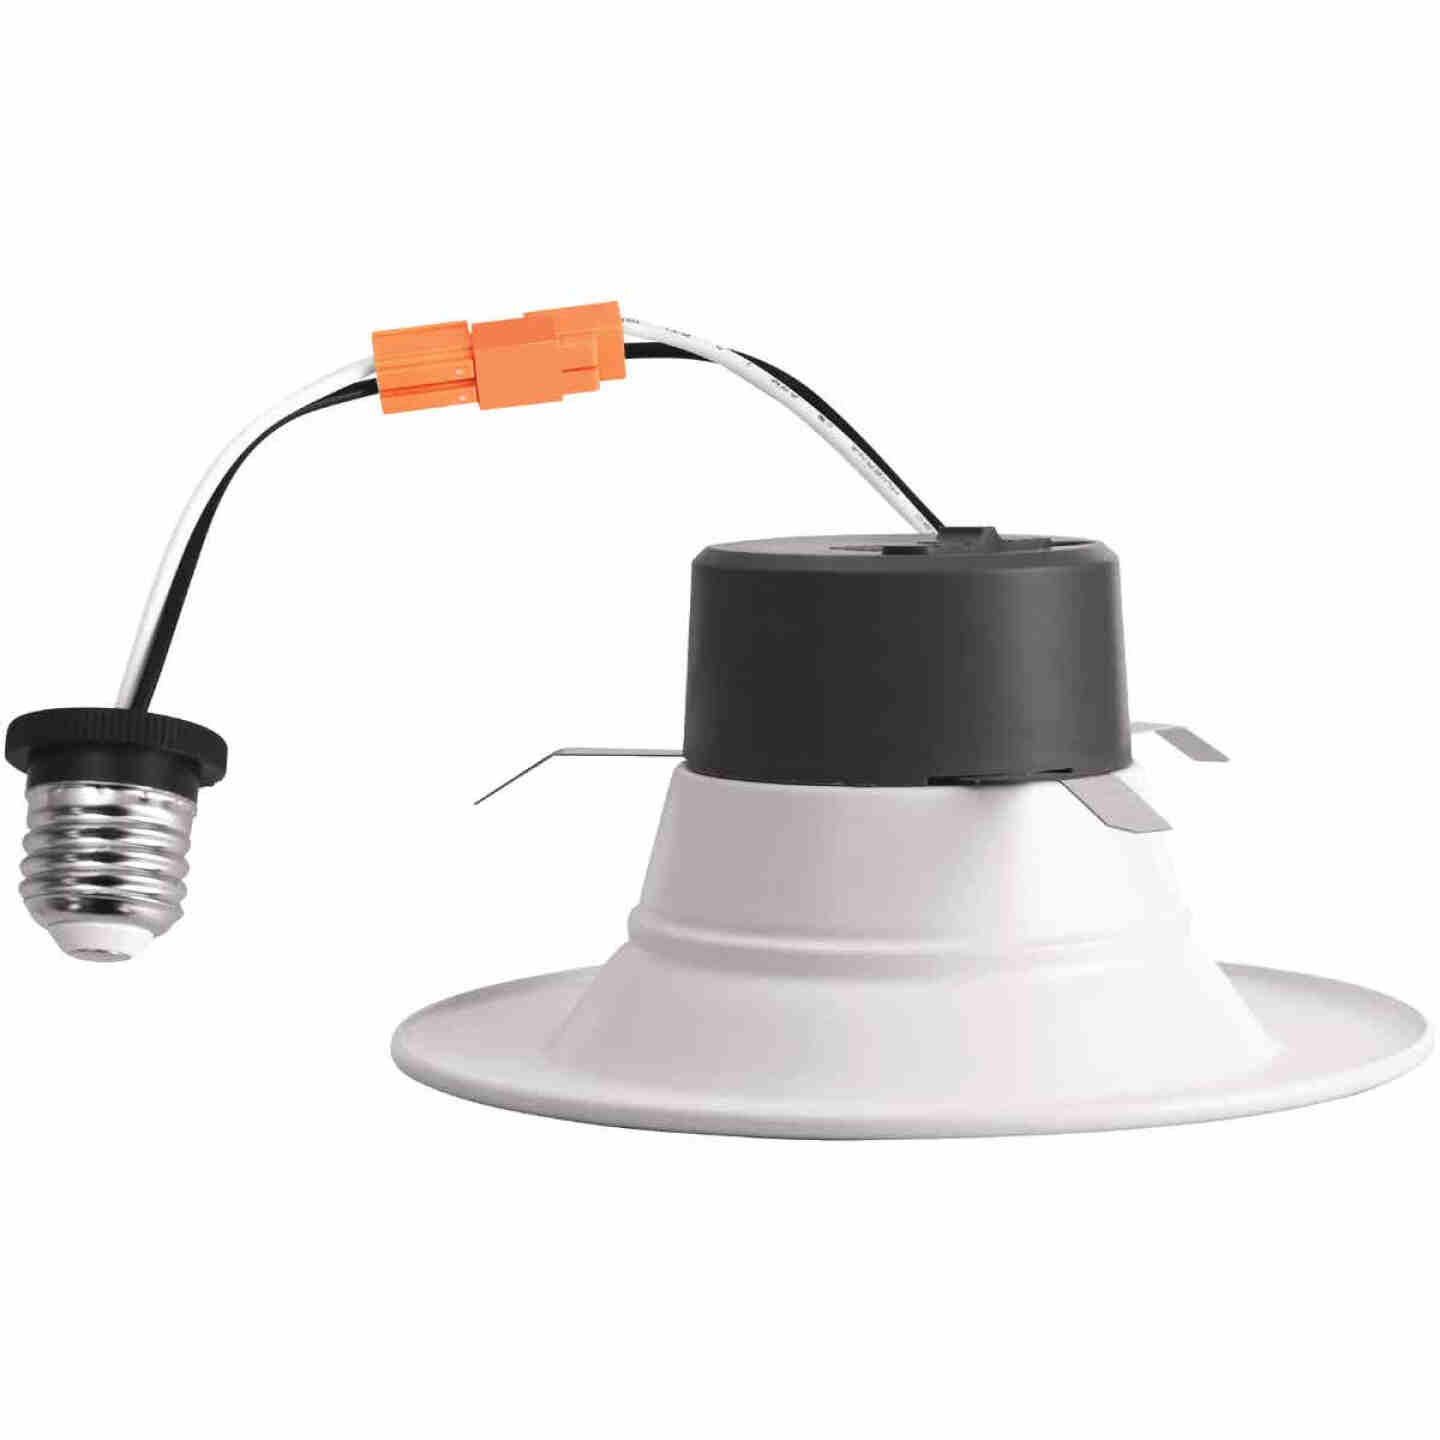 4 In. Retrofit IC Rated White LED CCT Tunable Down Light with Smooth Trim Image 4